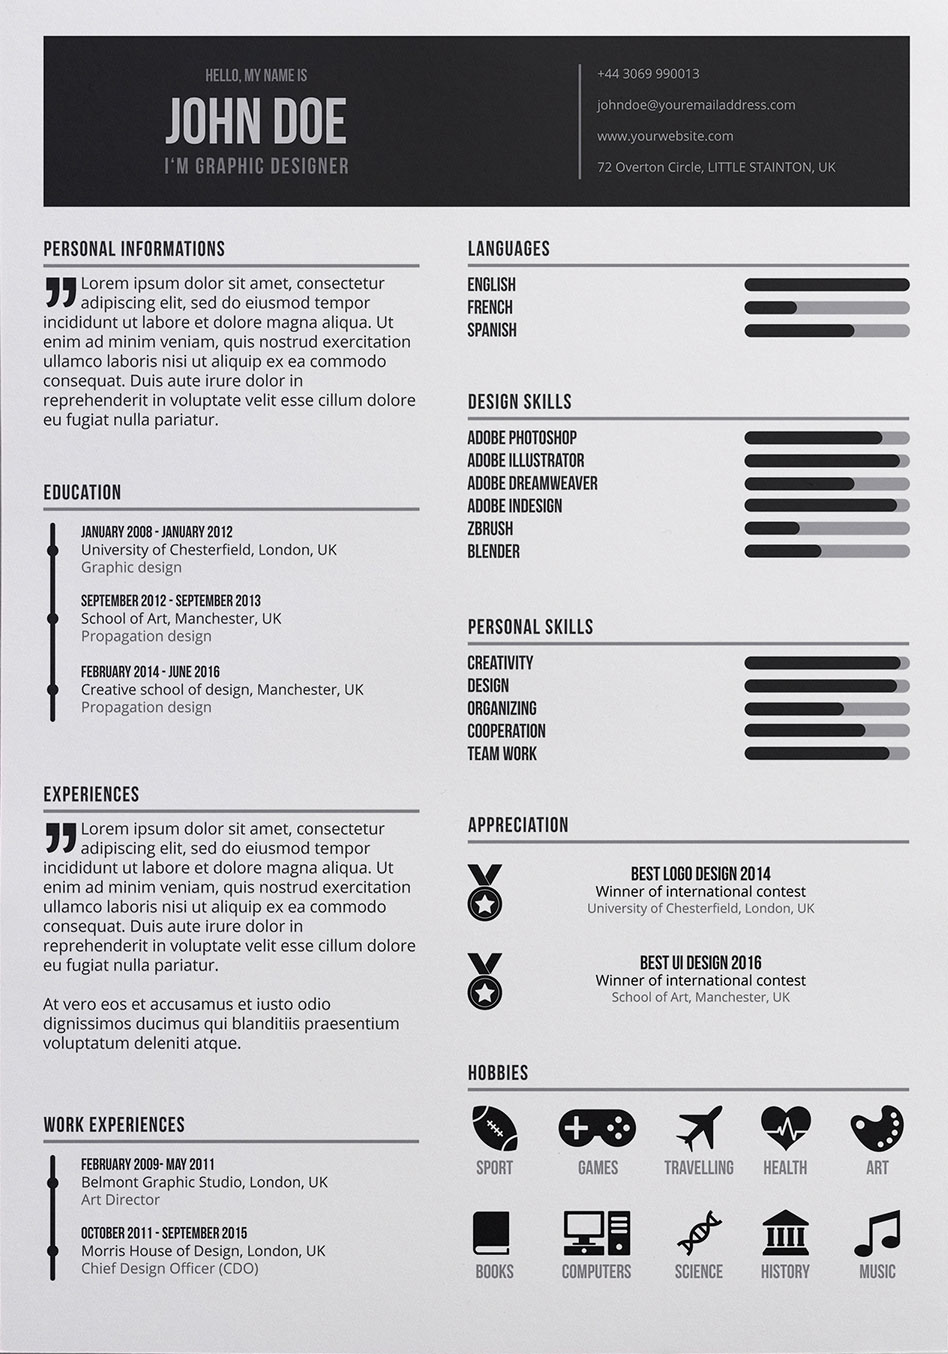 free graphic designer resume in psd format